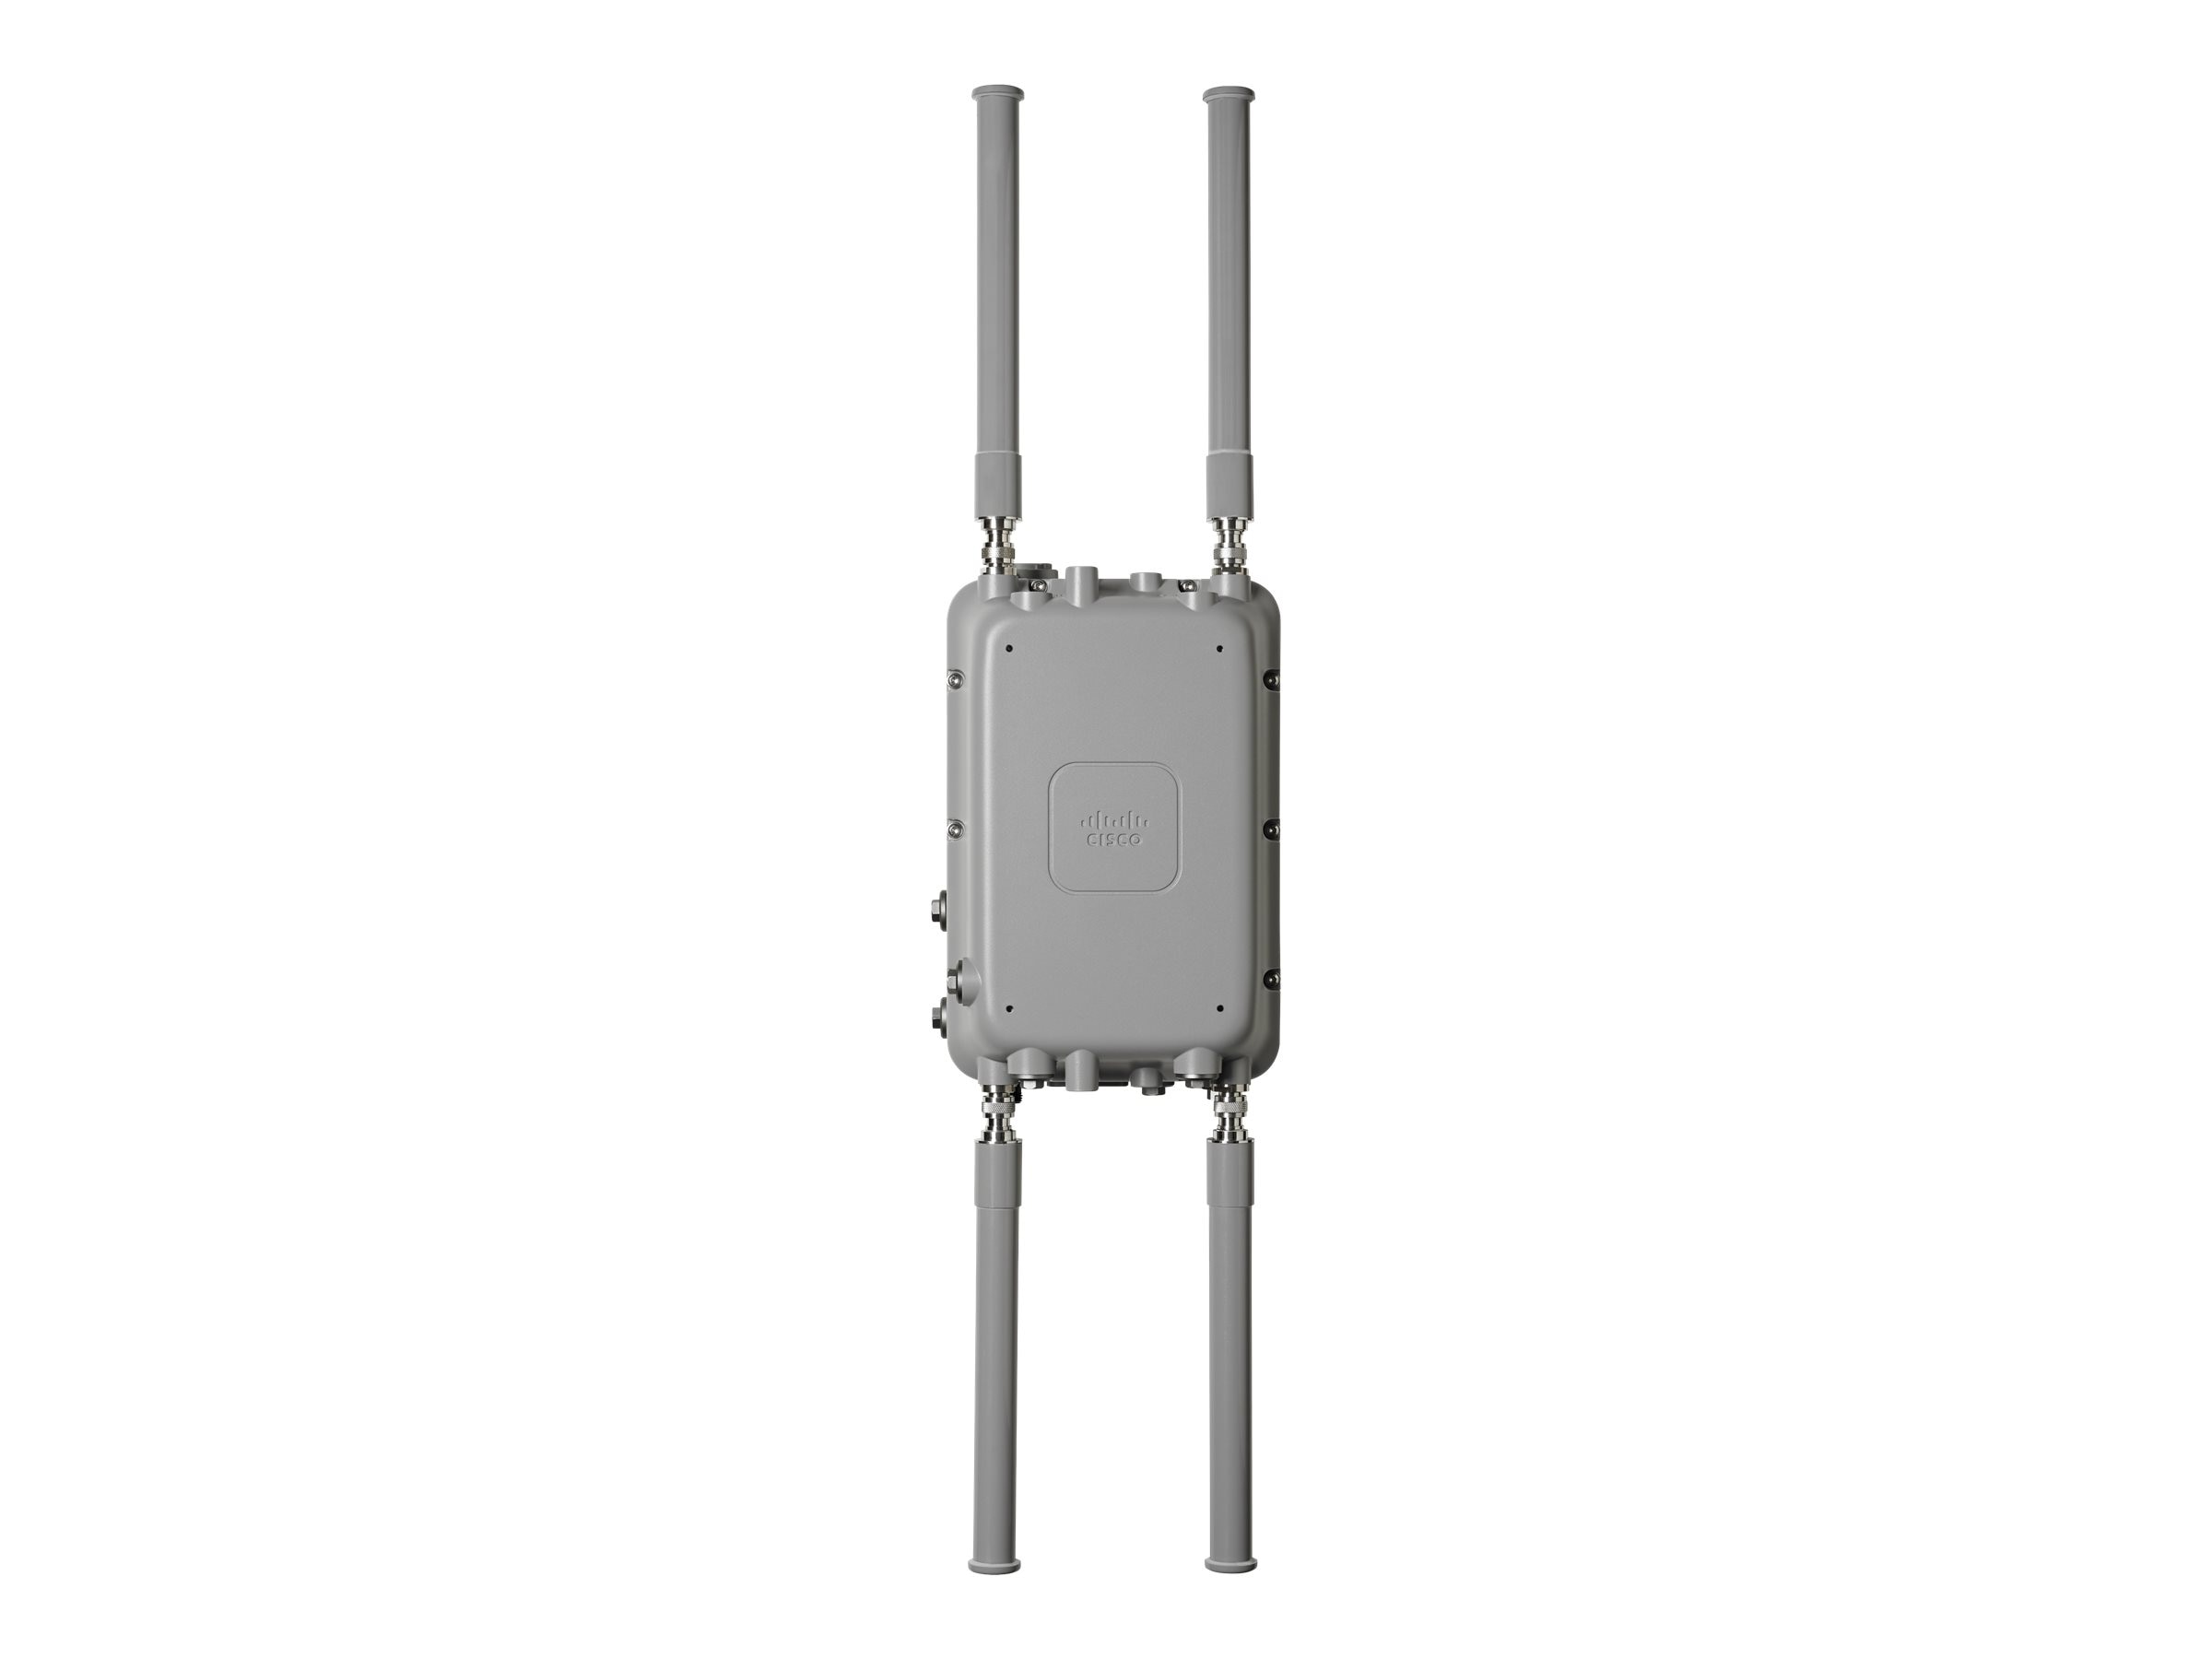 Cisco AIR-AP1572EAC-S-K9 Image 3